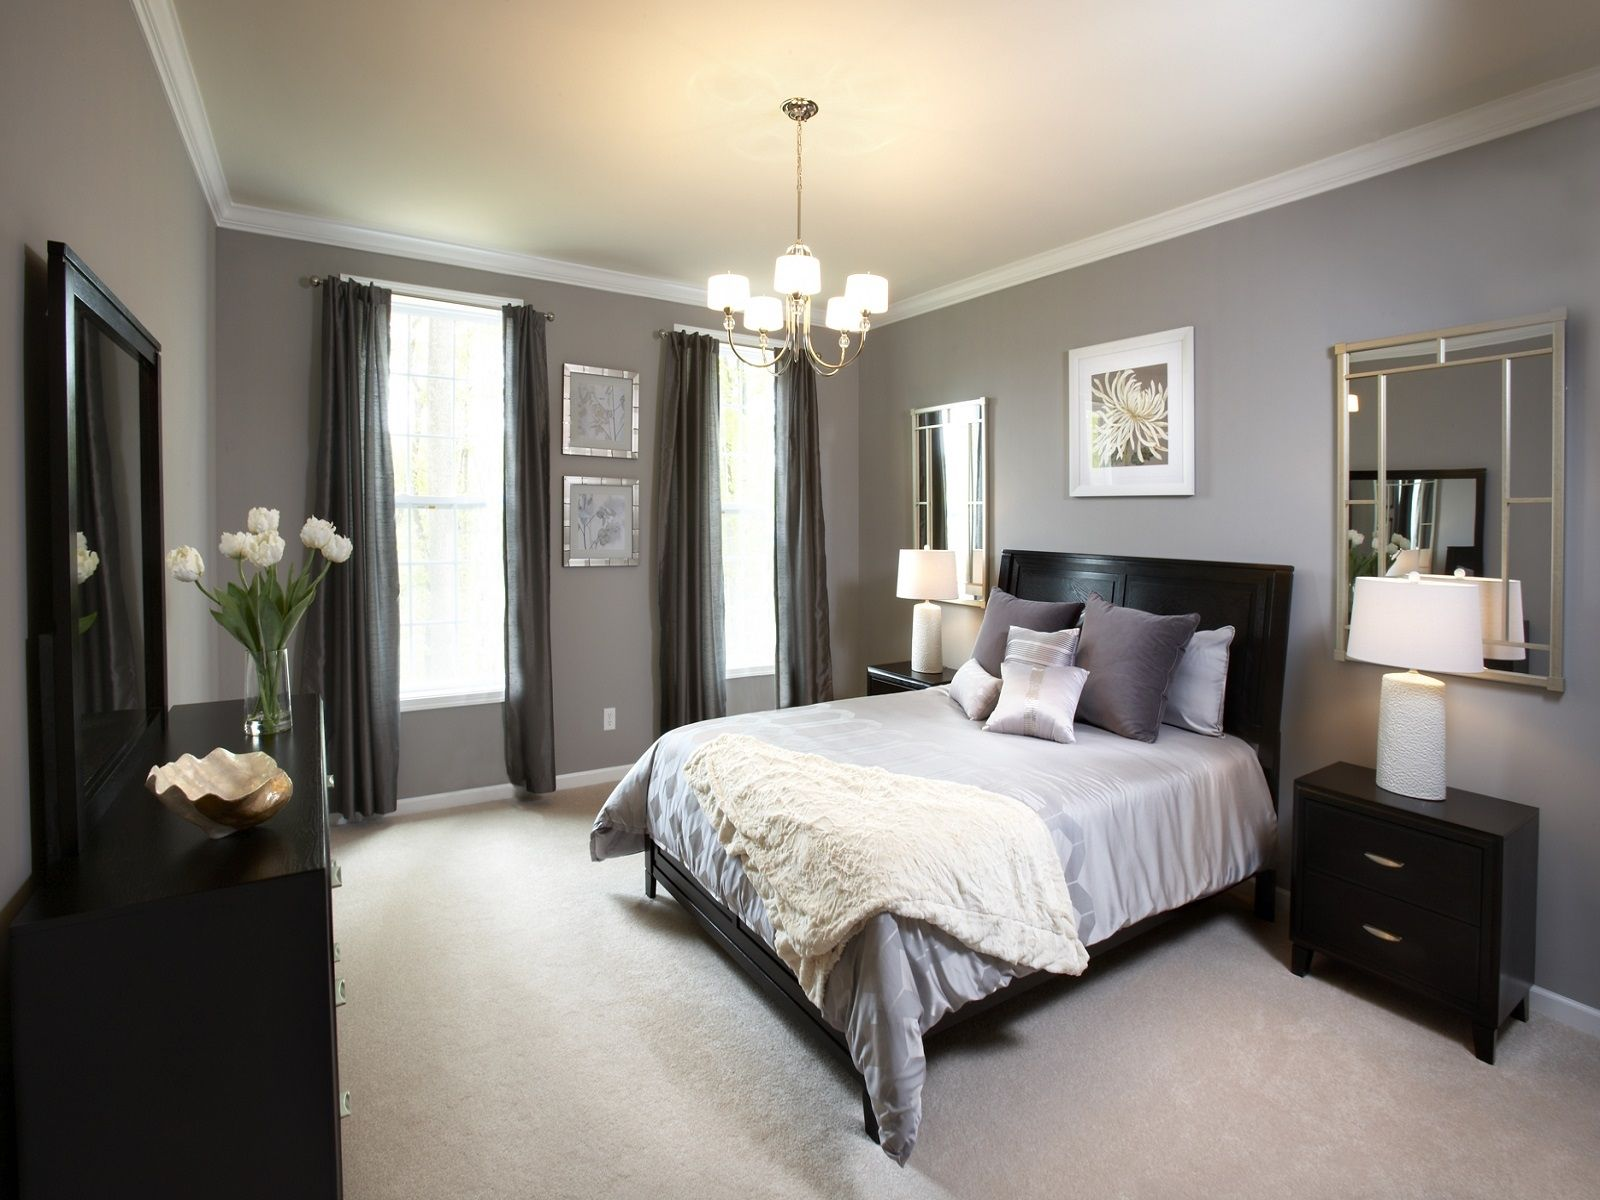 Bedroom Design Ideas Grey 45 beautiful paint color ideas for master bedroom | bedrooms